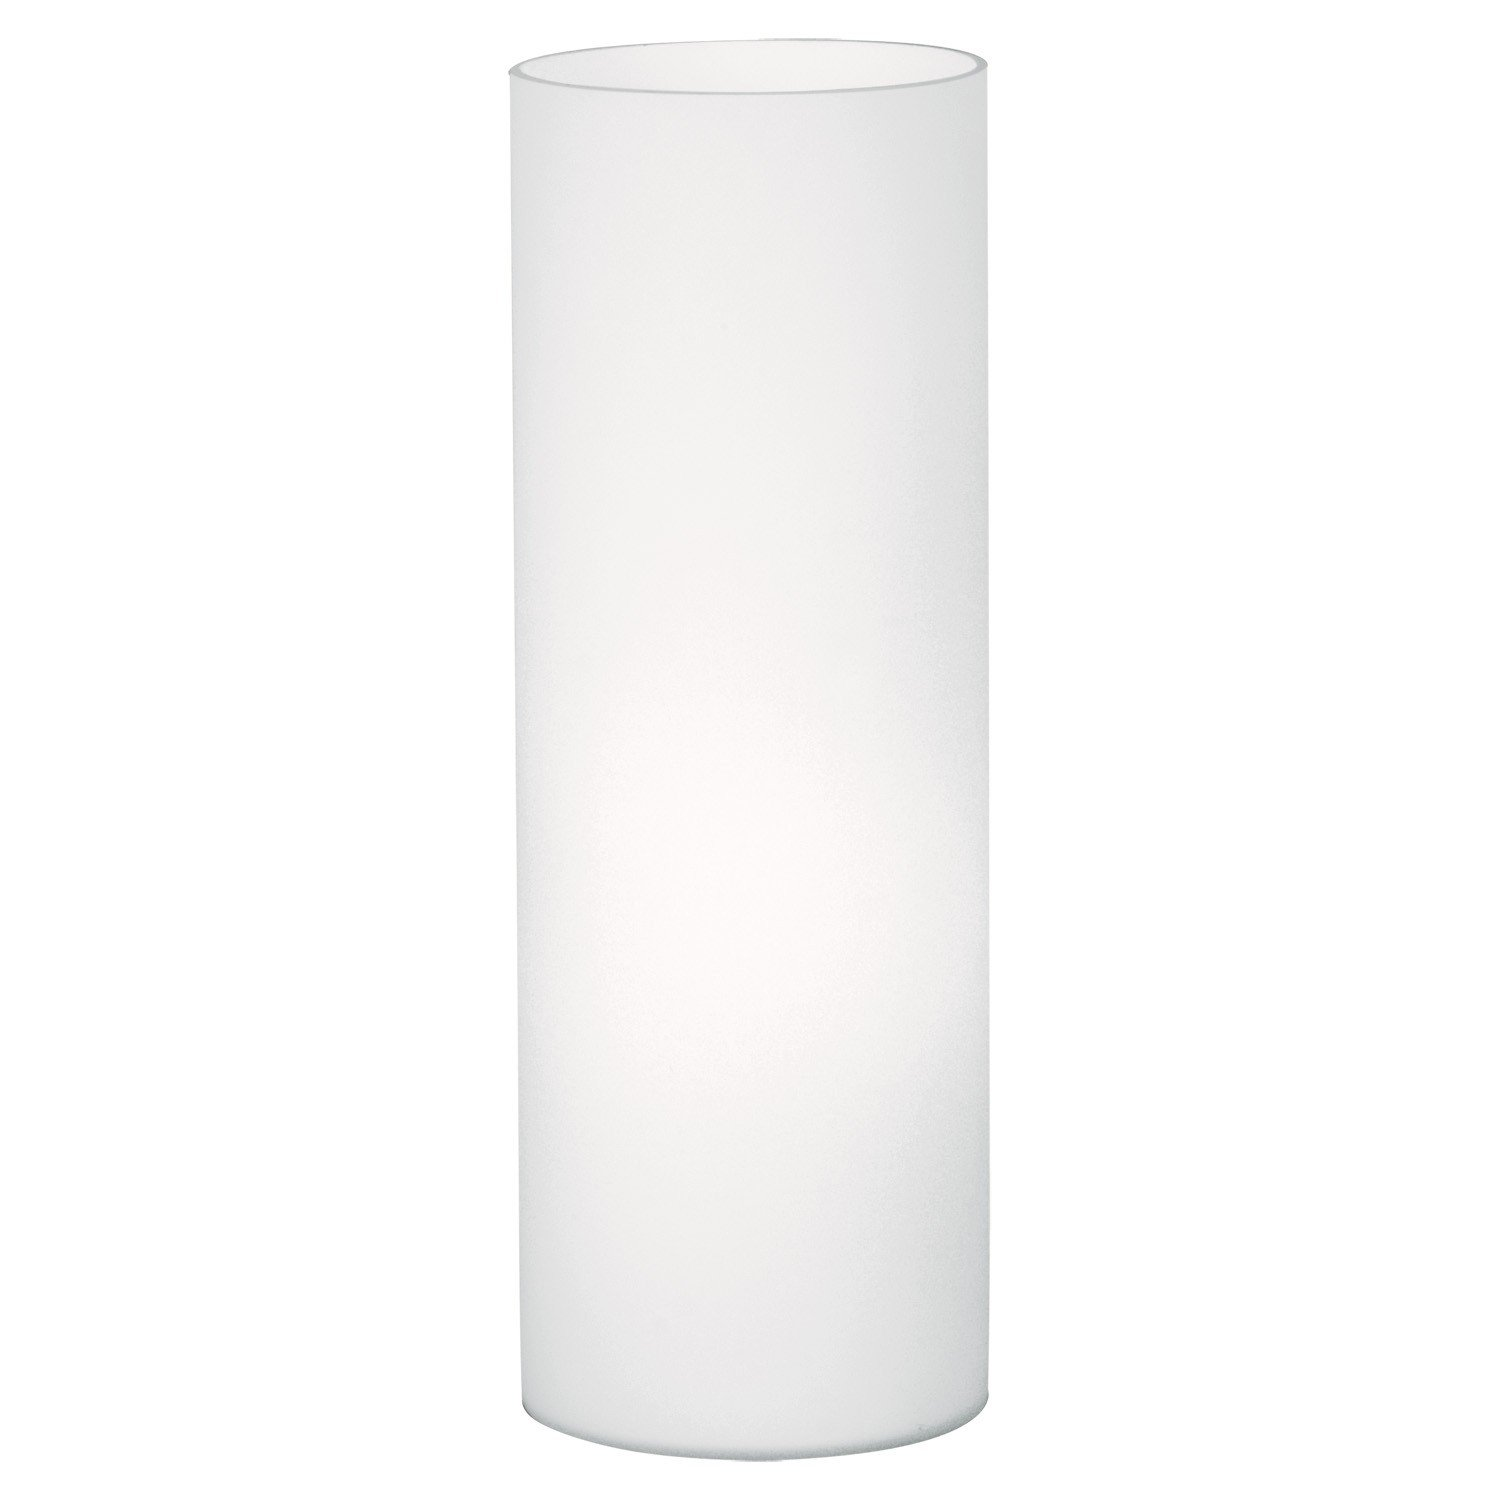 Eglo 93196  Lampe de table, verre, E27, Blanc